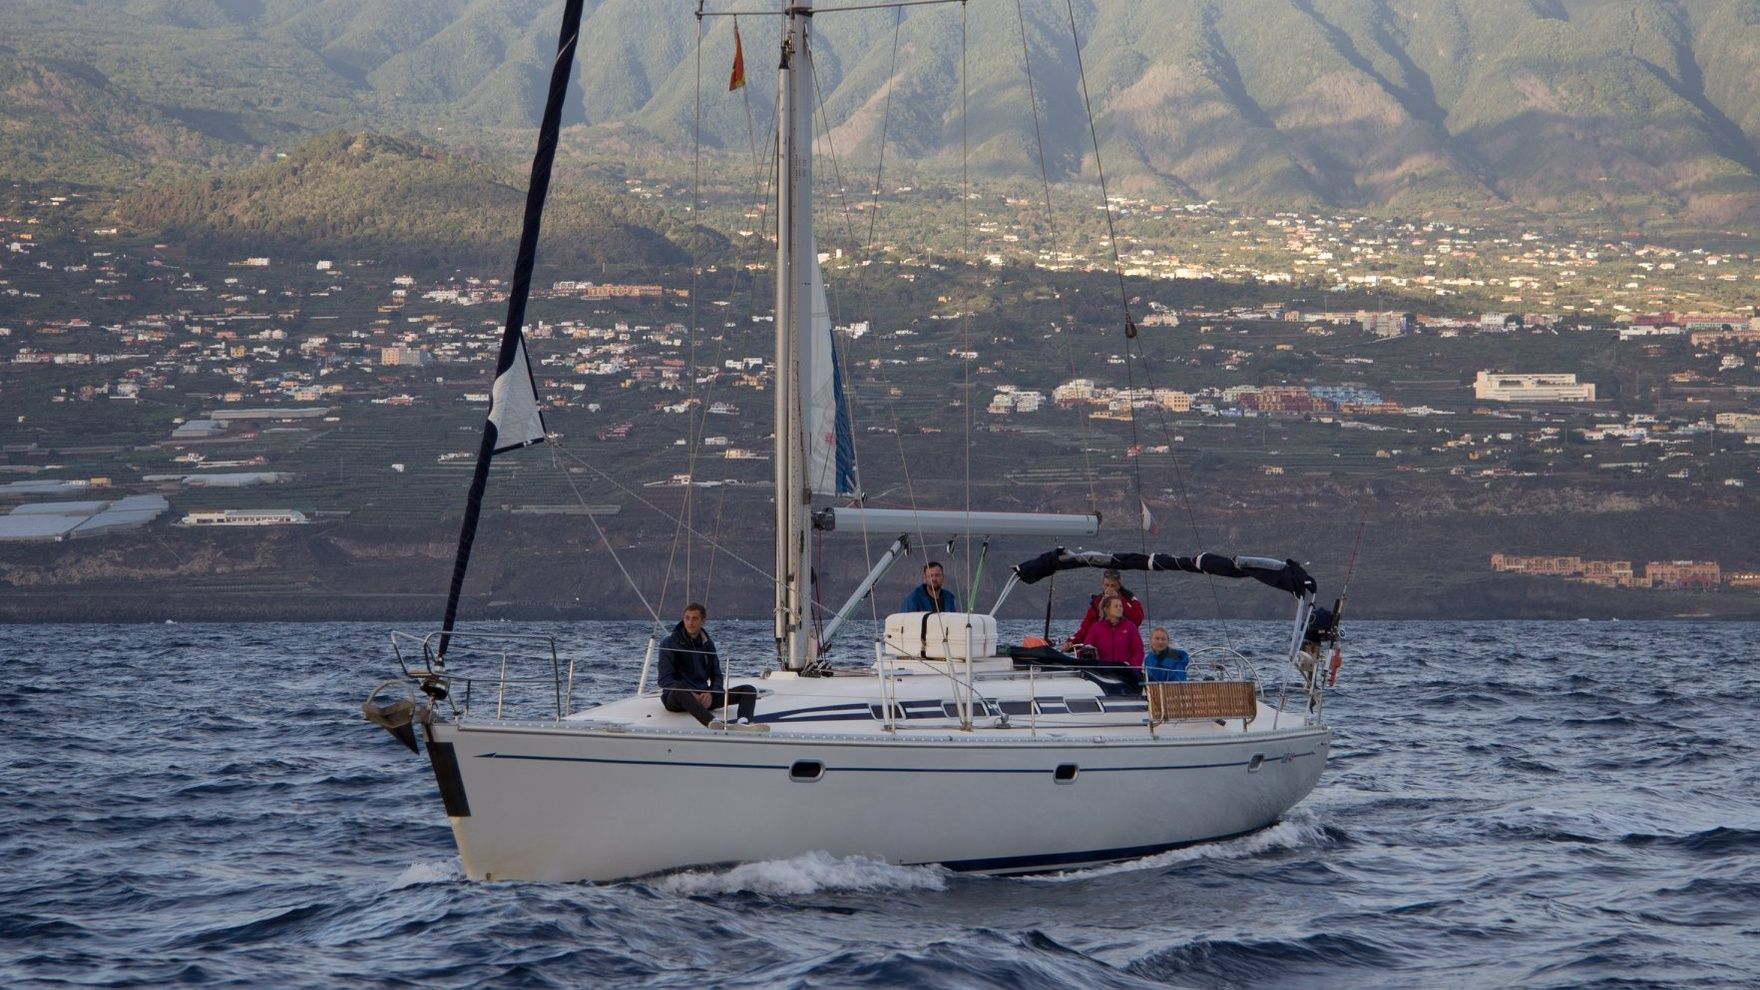 Atlantic Yachting in the Canary Islands